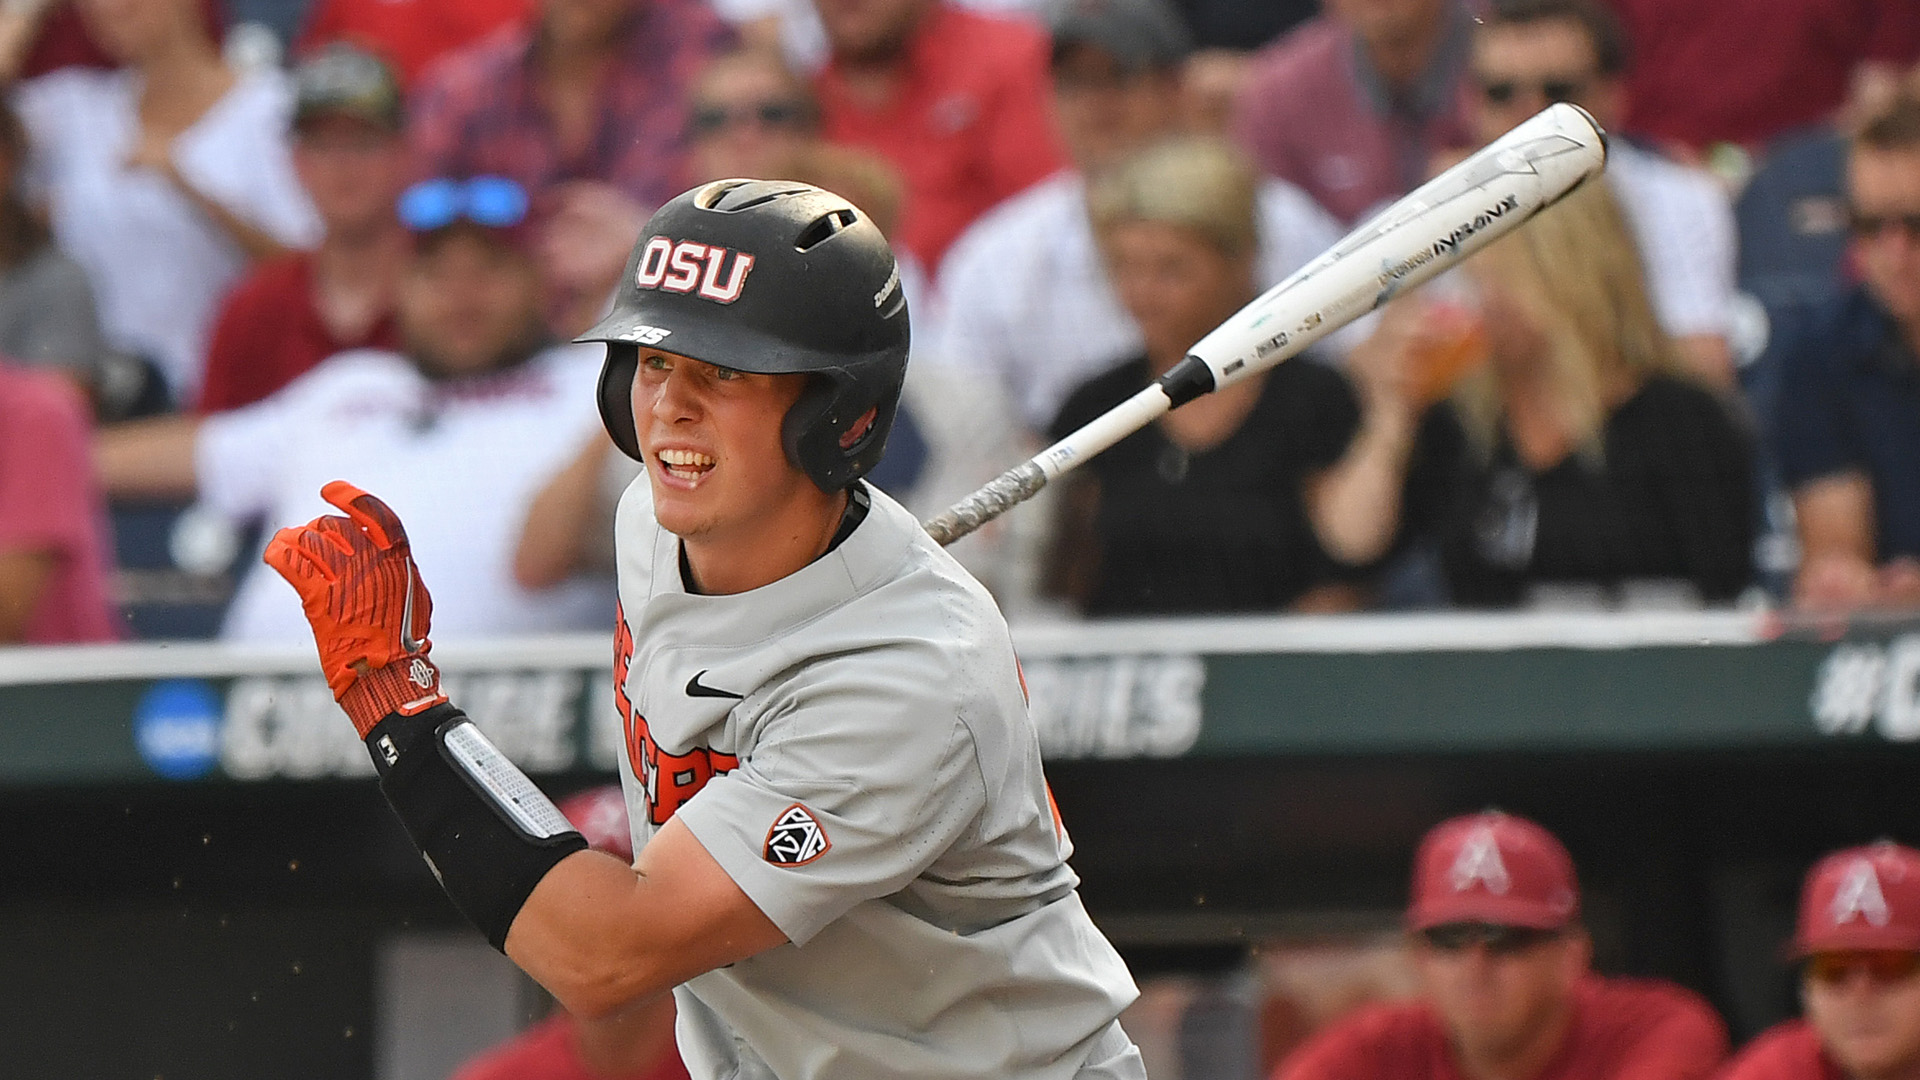 Oregon State's use of freshman pitcher in CWS was borderline abuse